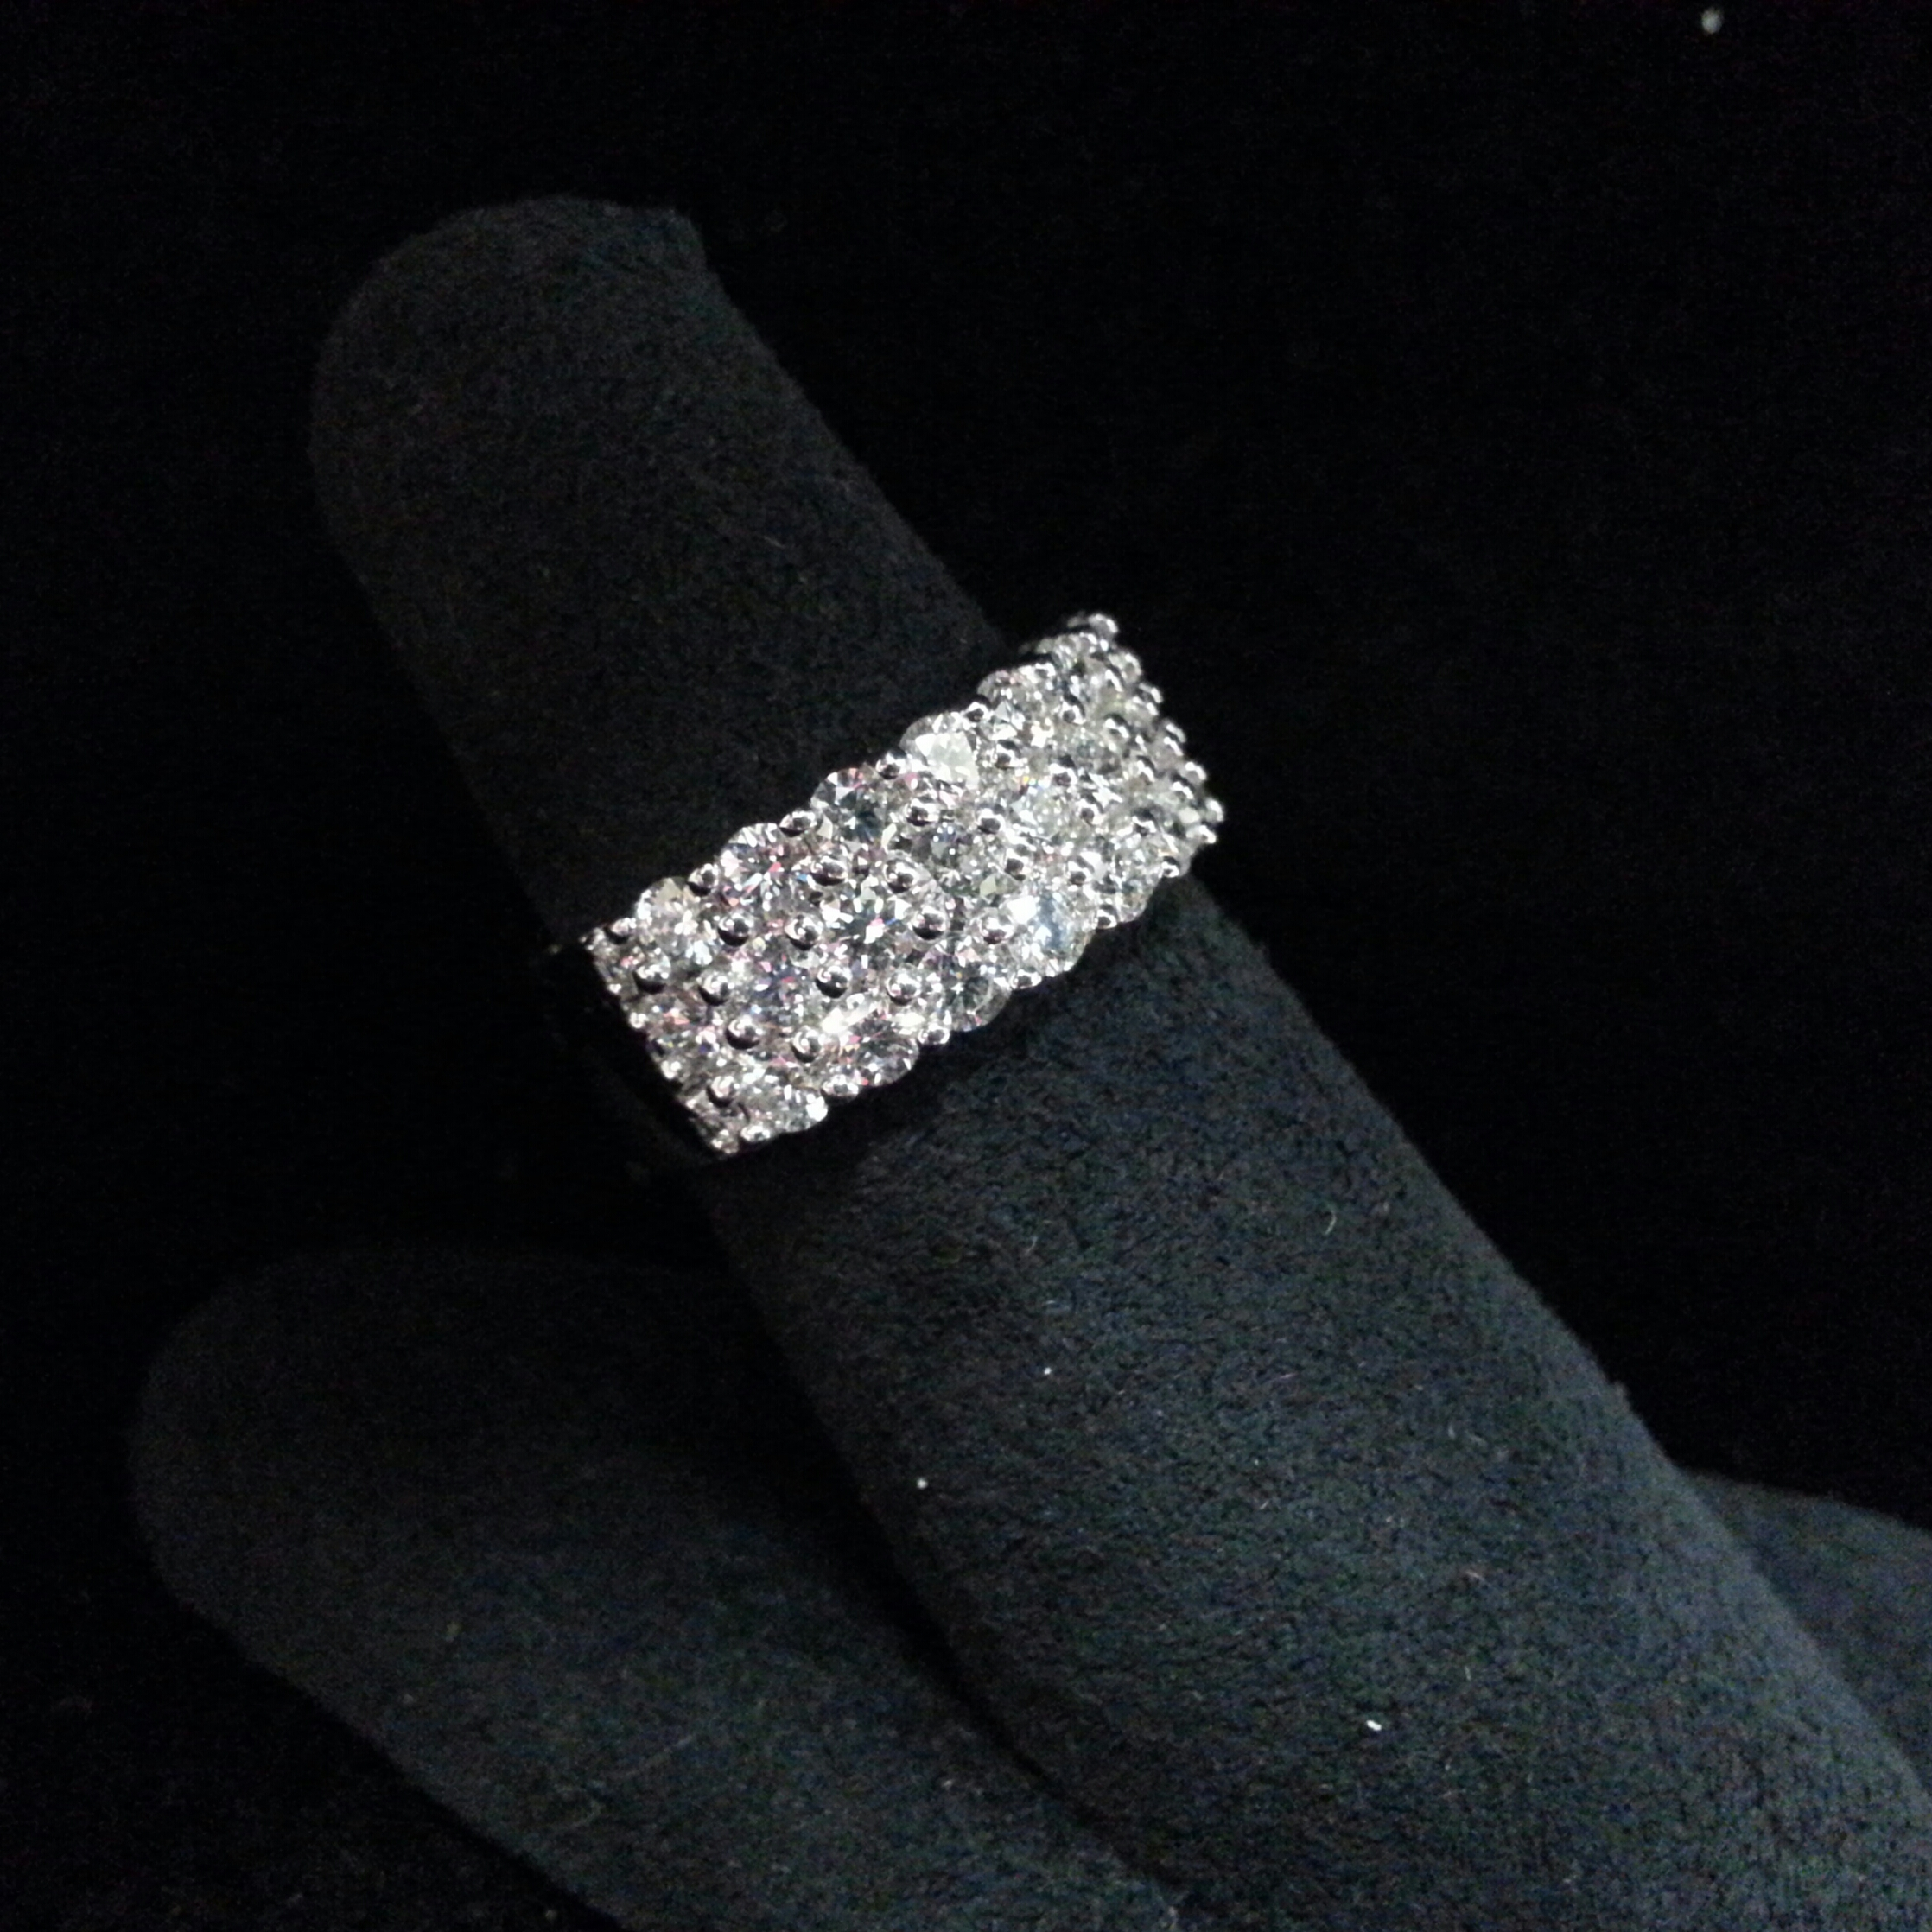 18k White Gold Memoire Three Row Diamond Ring. 2.09ctw of Diamonds.